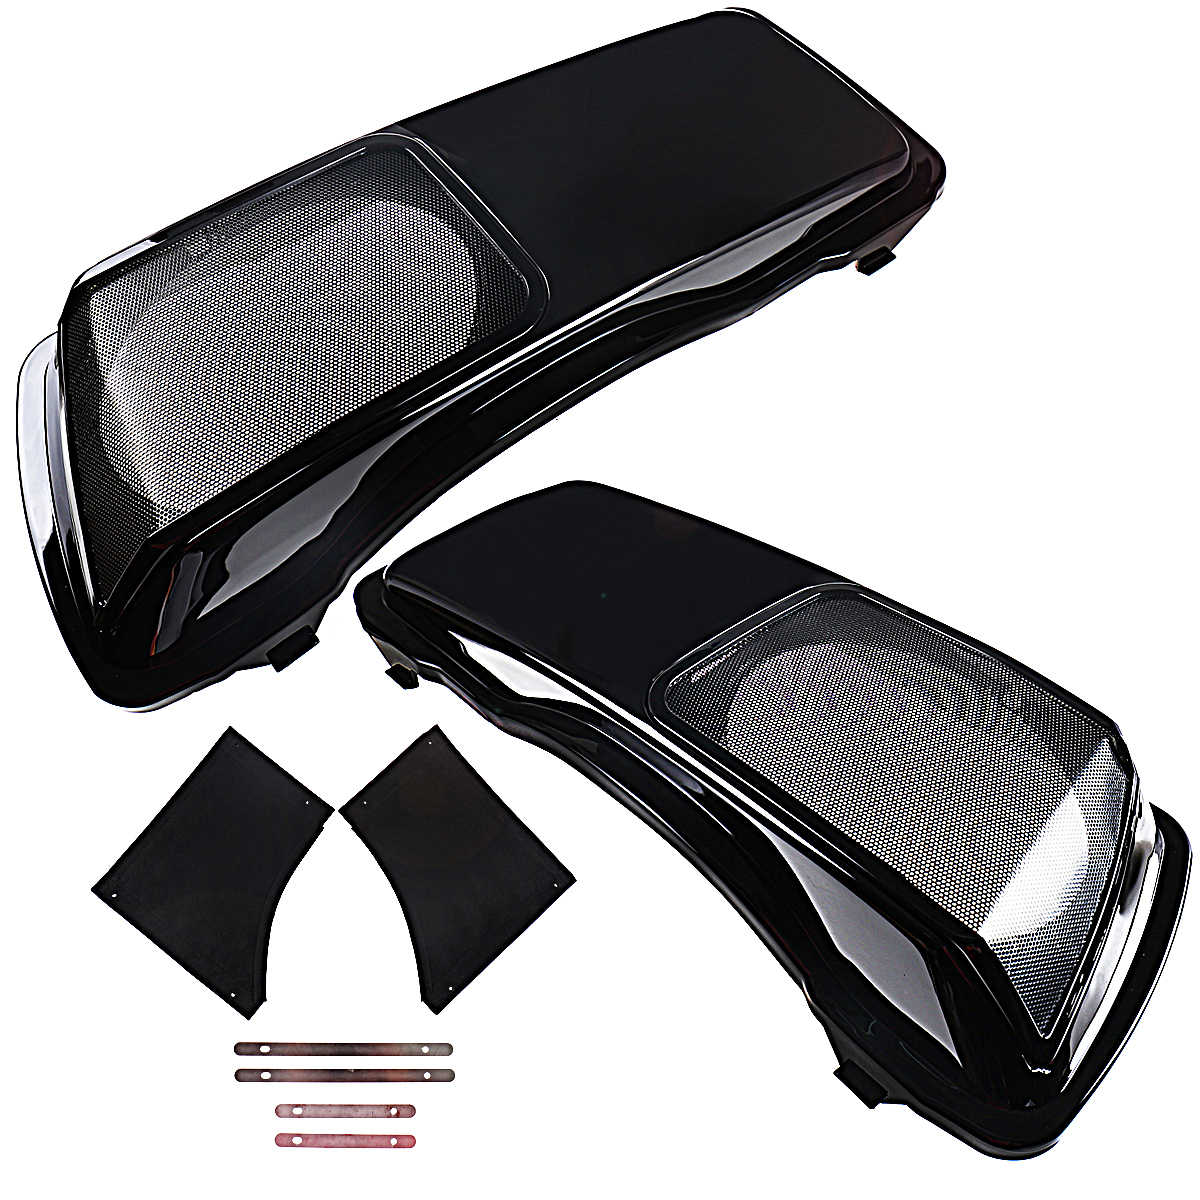 6x9 Speaker Saddlebag Lids For Harley Touring 1993-2013 Electra Street Glide FLHX CVO Style